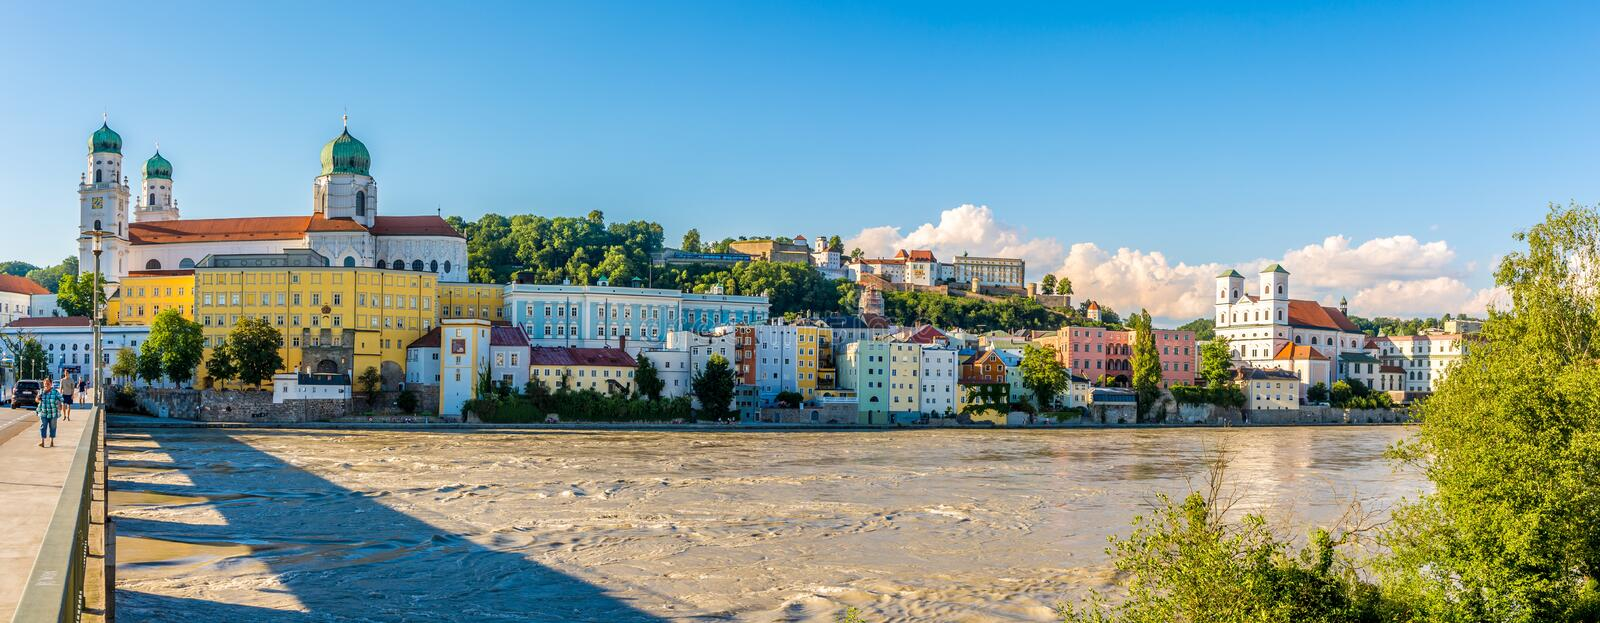 Panoramic view at the Bank of Inn river in Passau - Germany stock photos